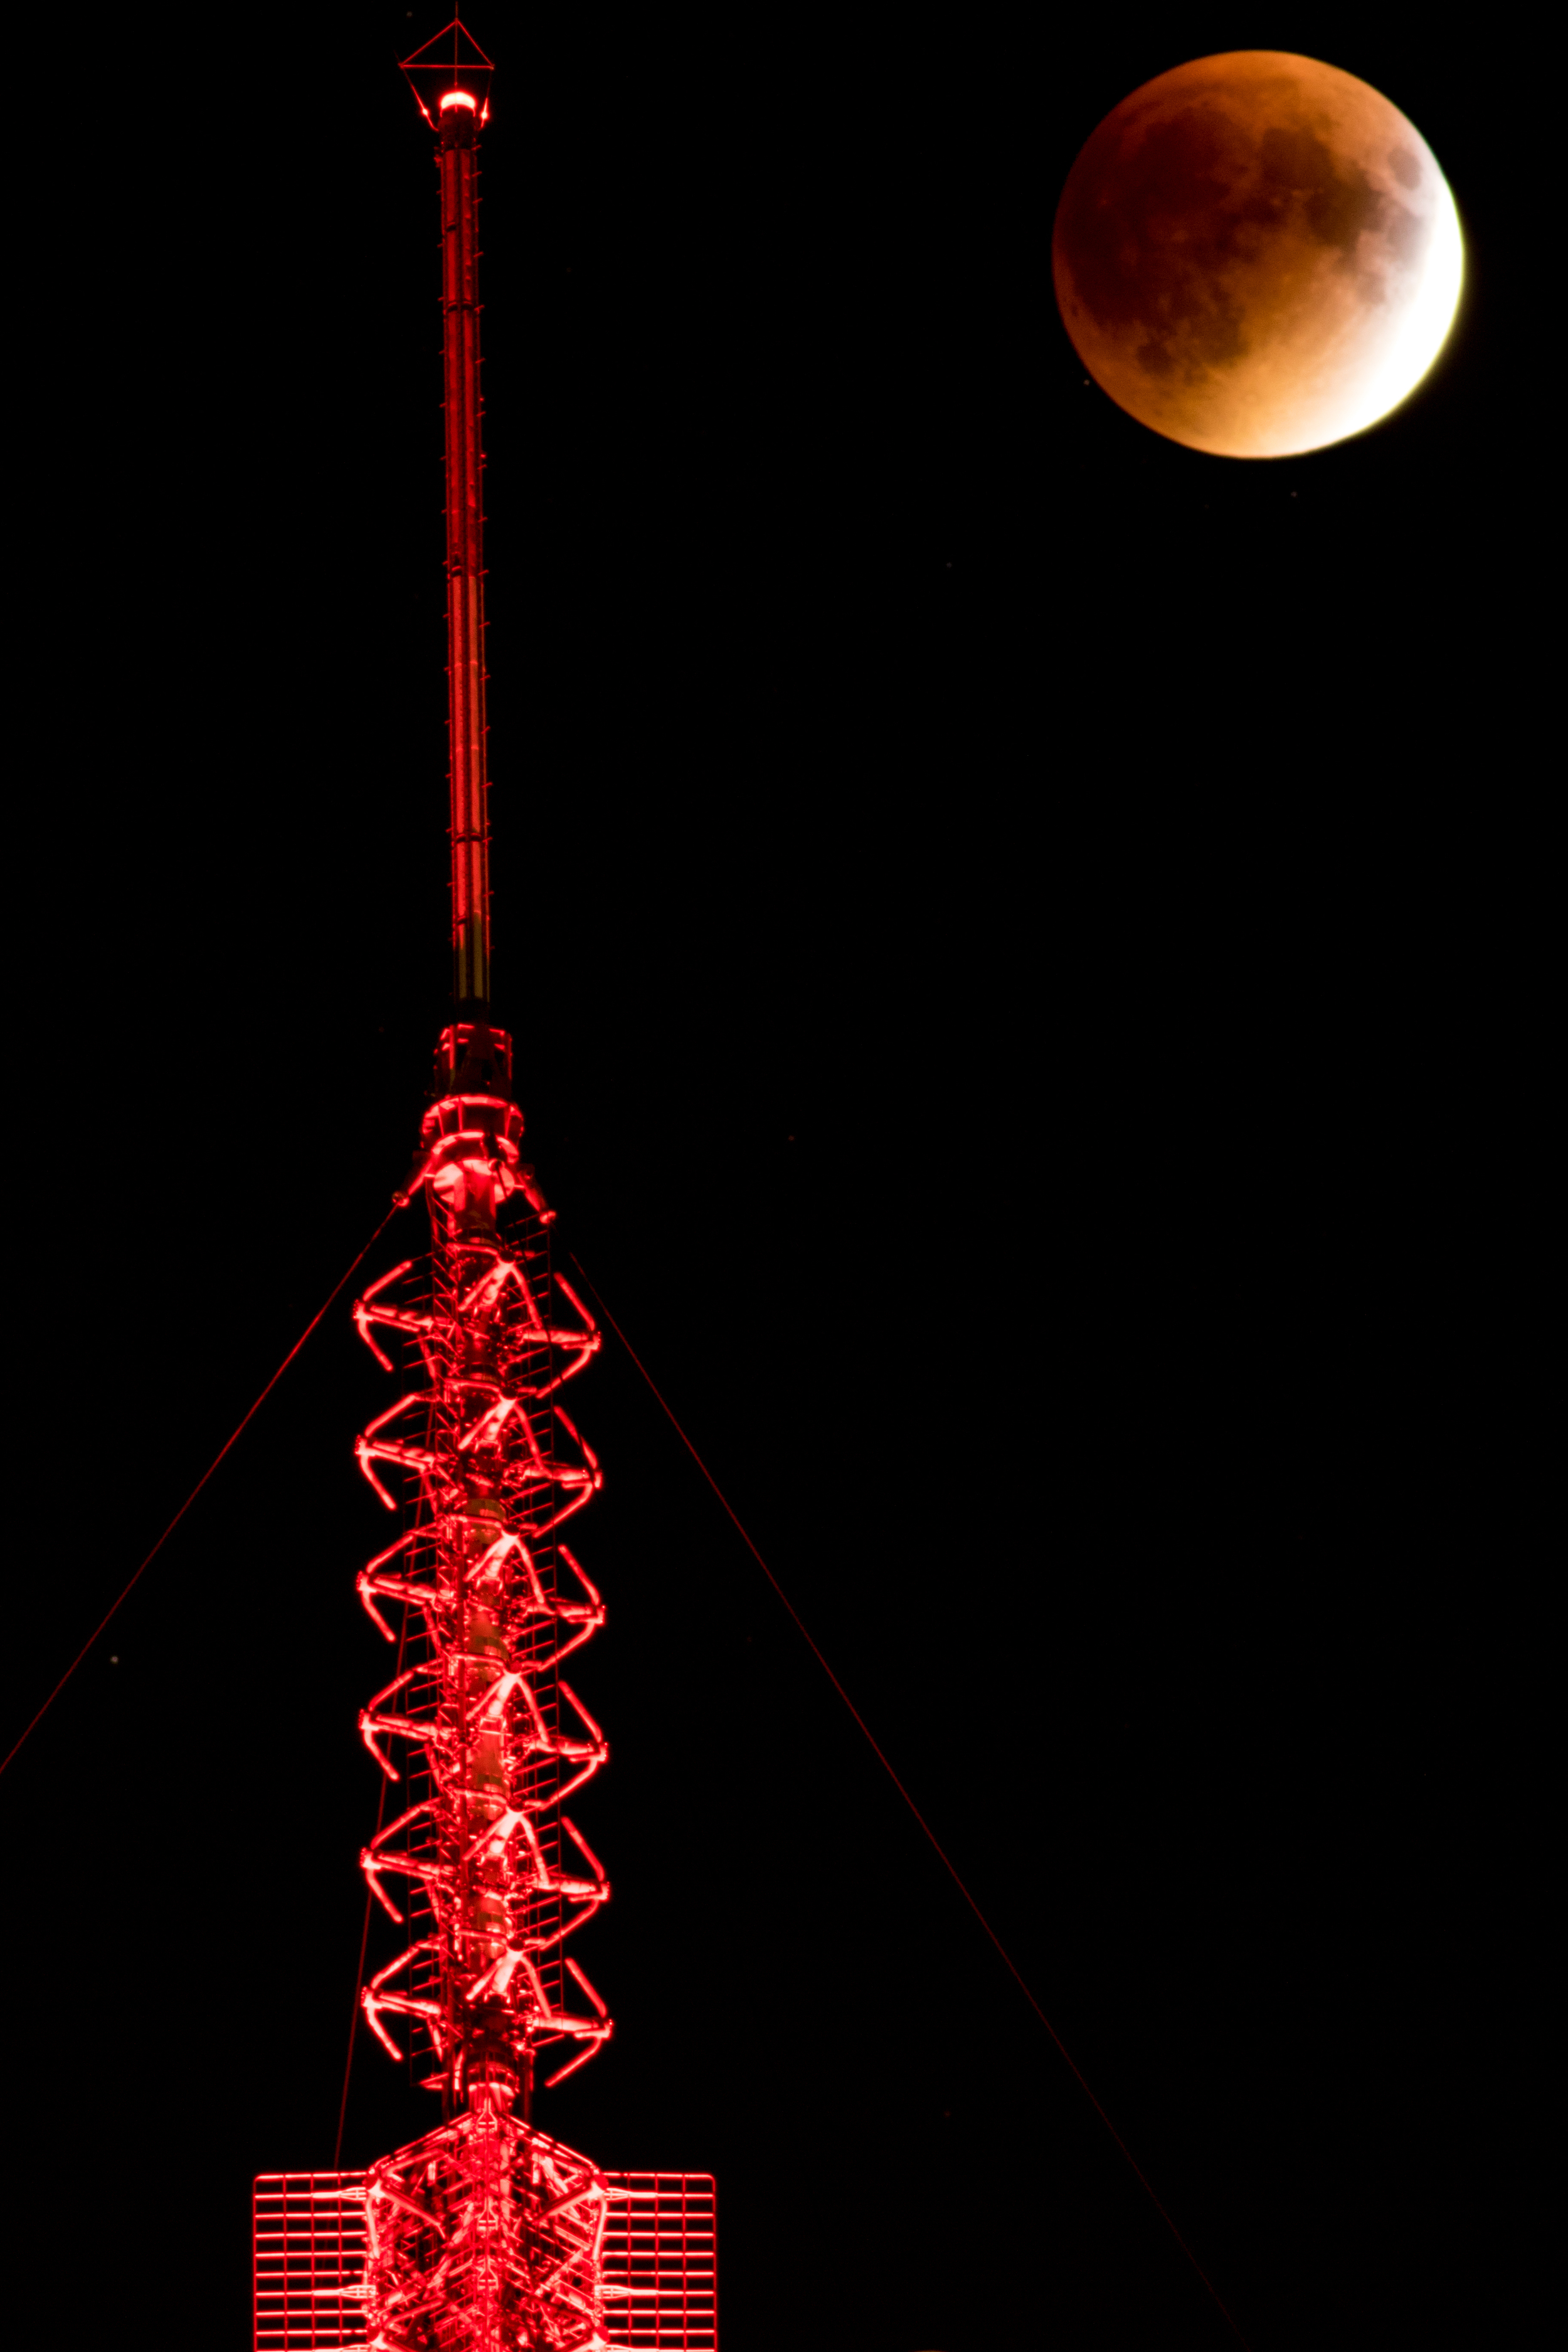 The moon next to the antenna on top the the Prudential Building in Boston, MA